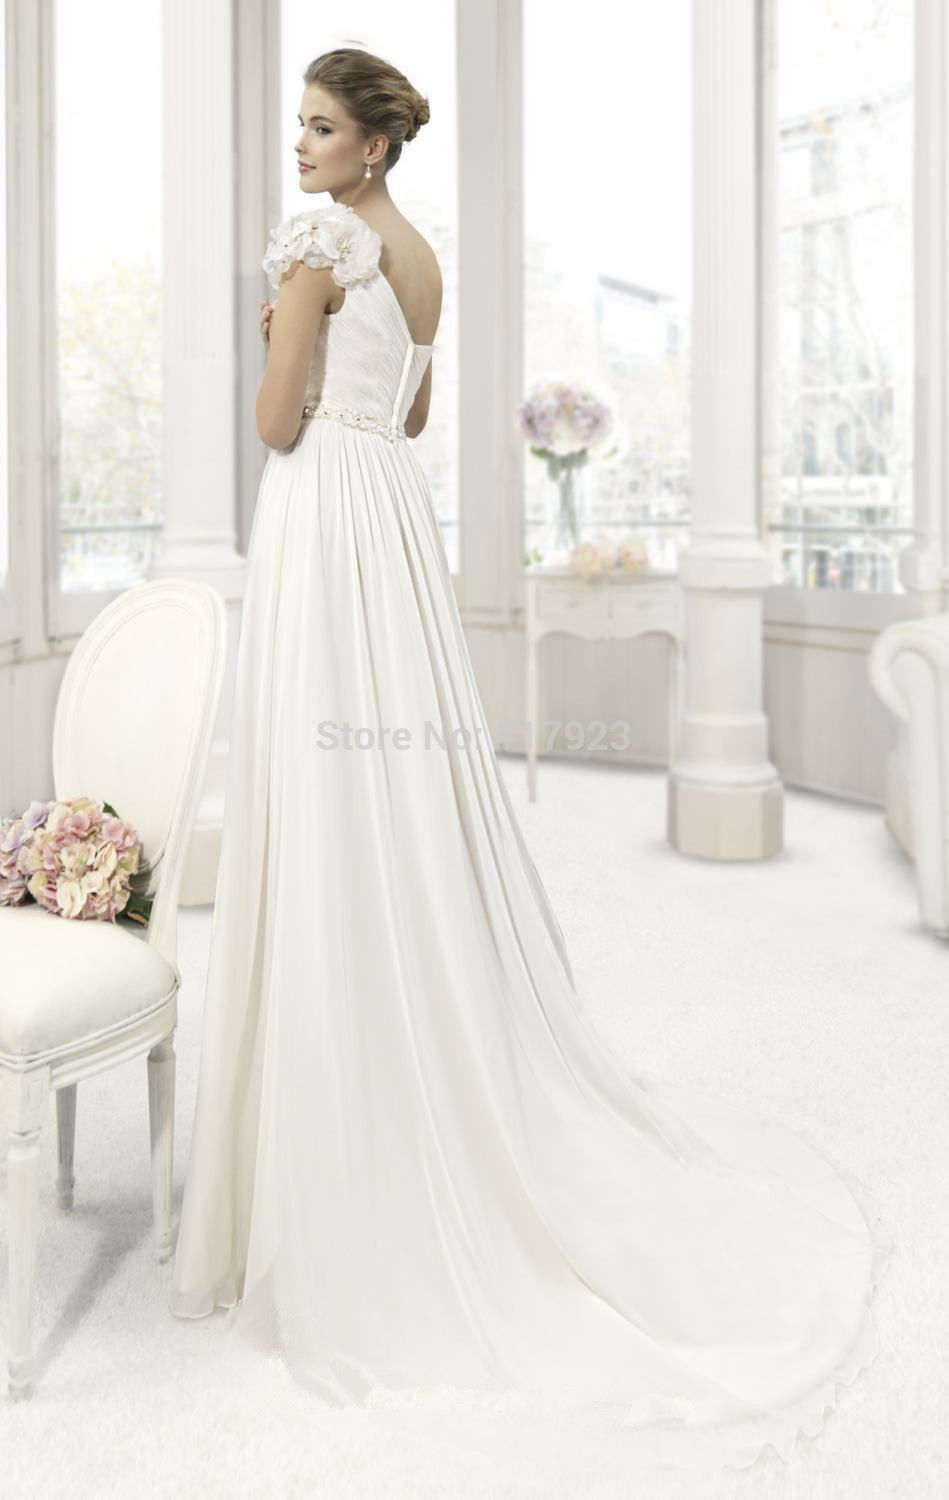 Off White Wedding Dresses Casual Beach Dress To Hire Uk High Street A Line Floor Length Court Train Flowers O 2015 In Stock From